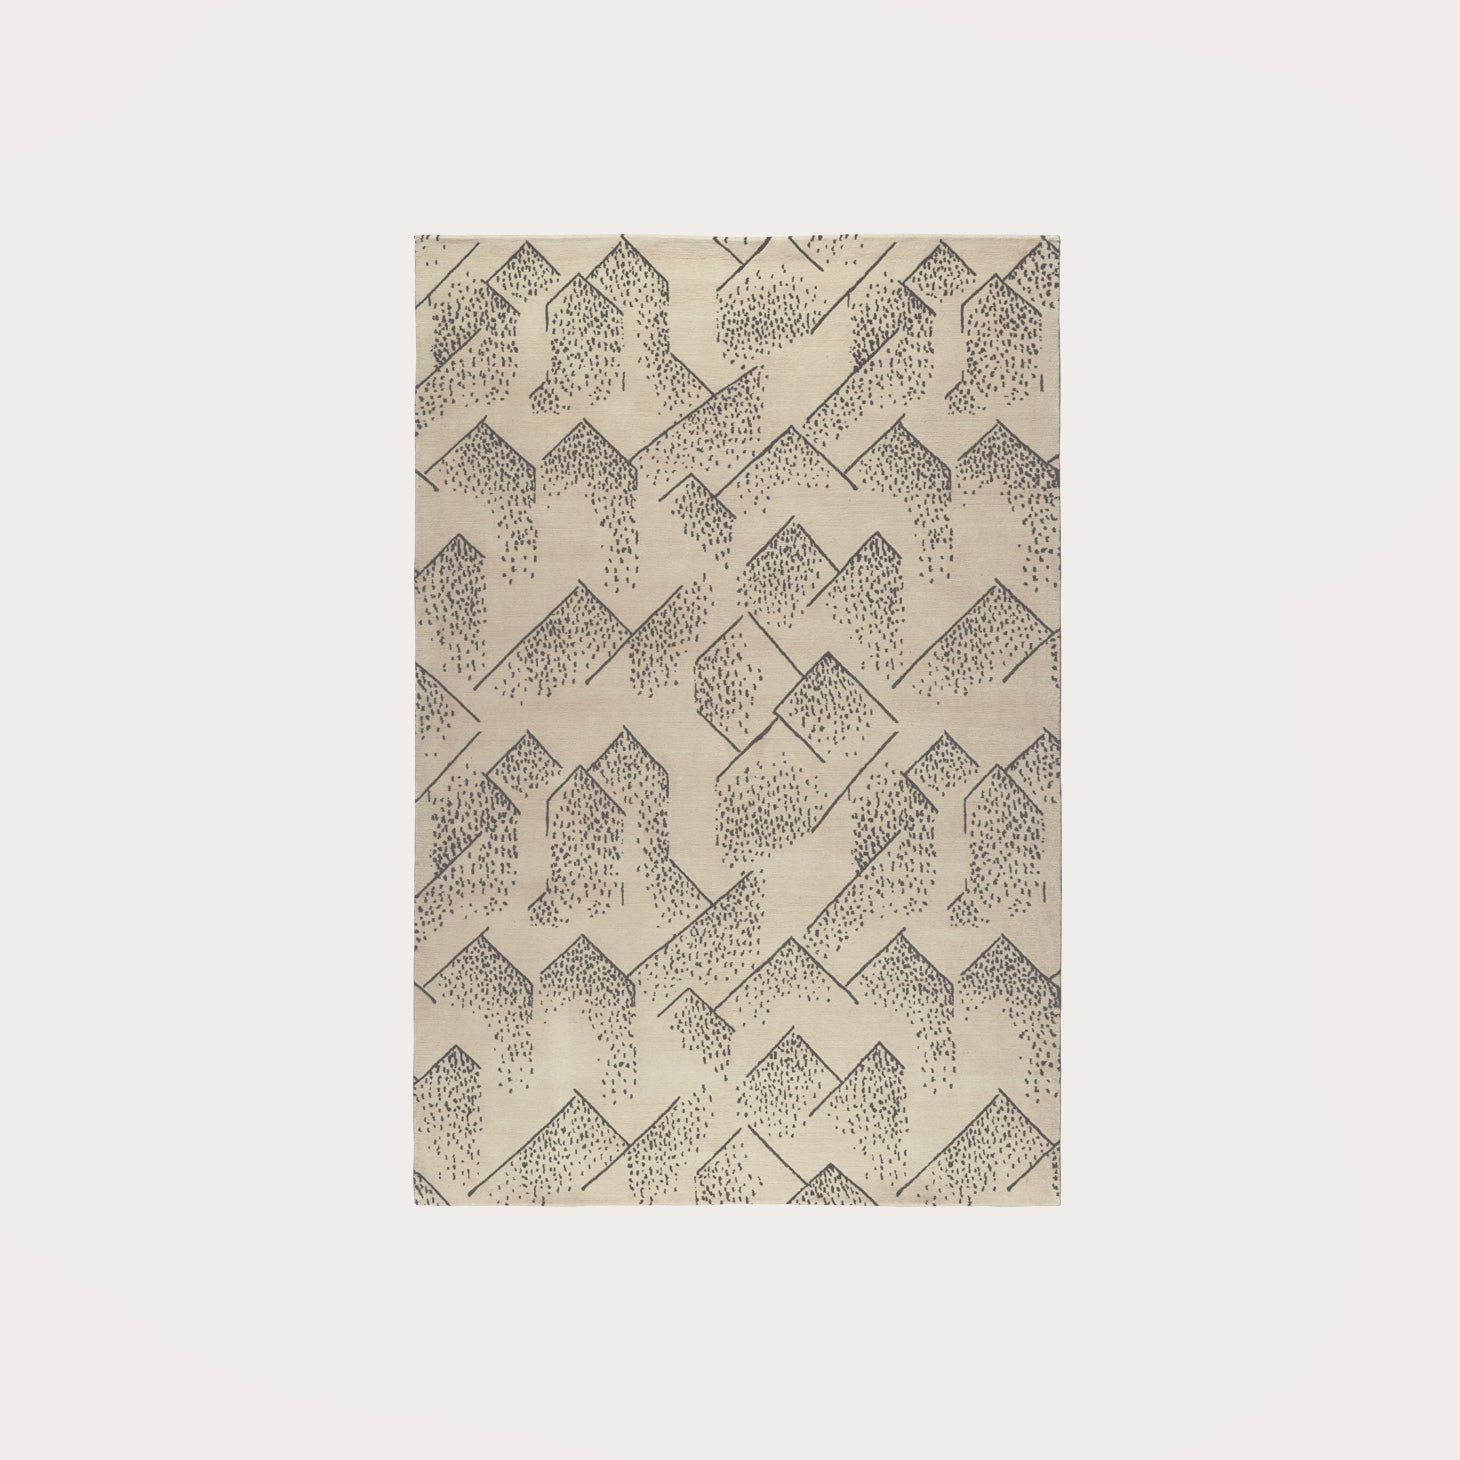 Brink Ivory Floor Coverings Kelly Wearstler Designer Furniture Sku: 391-150-11399